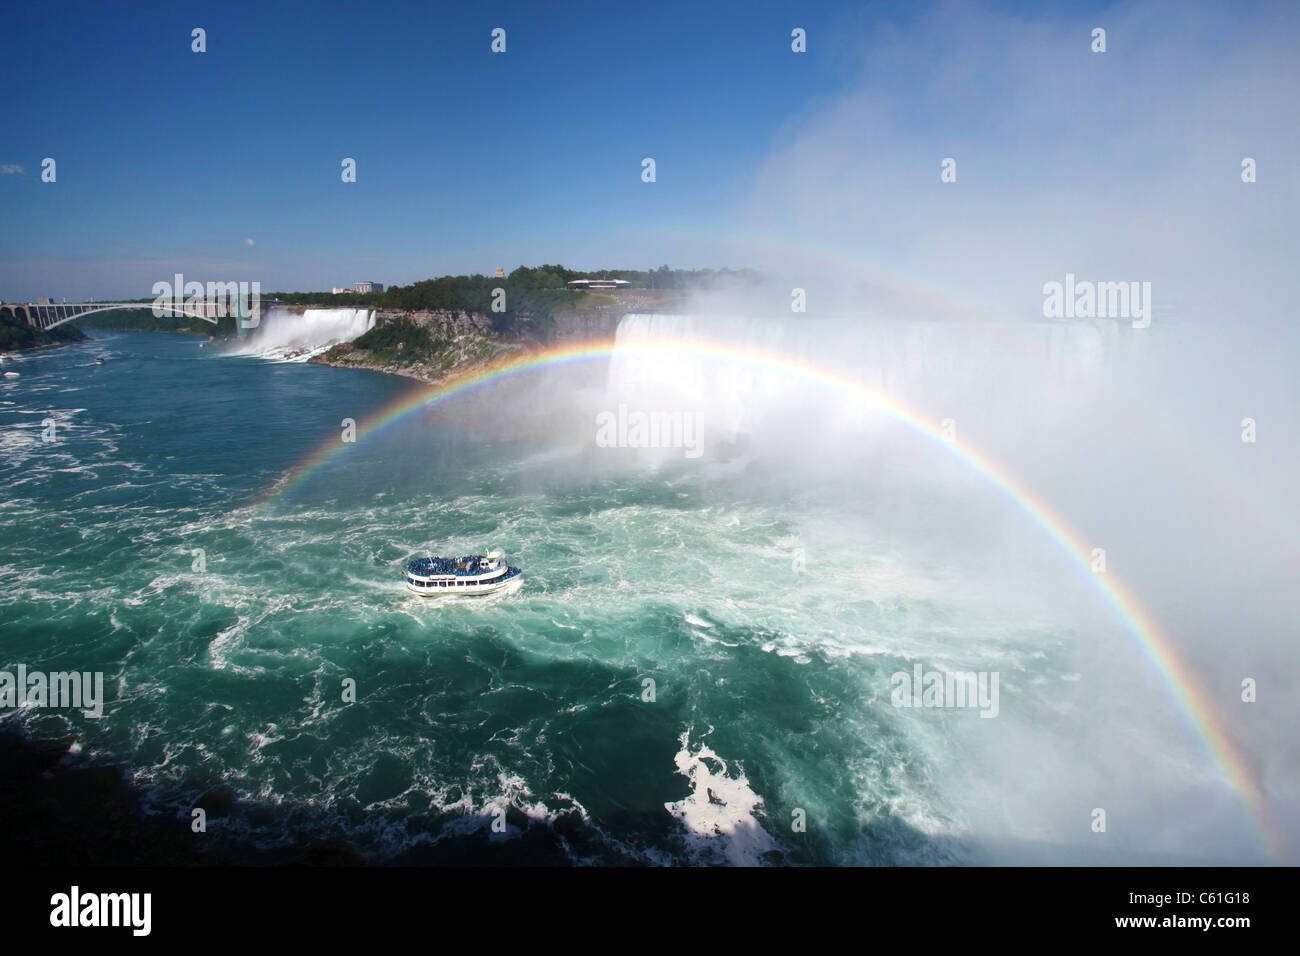 Maid-of-the-mist tour boat under double rainbow in Niagara falls, Ontario, Canada, 2011 - Stock Image